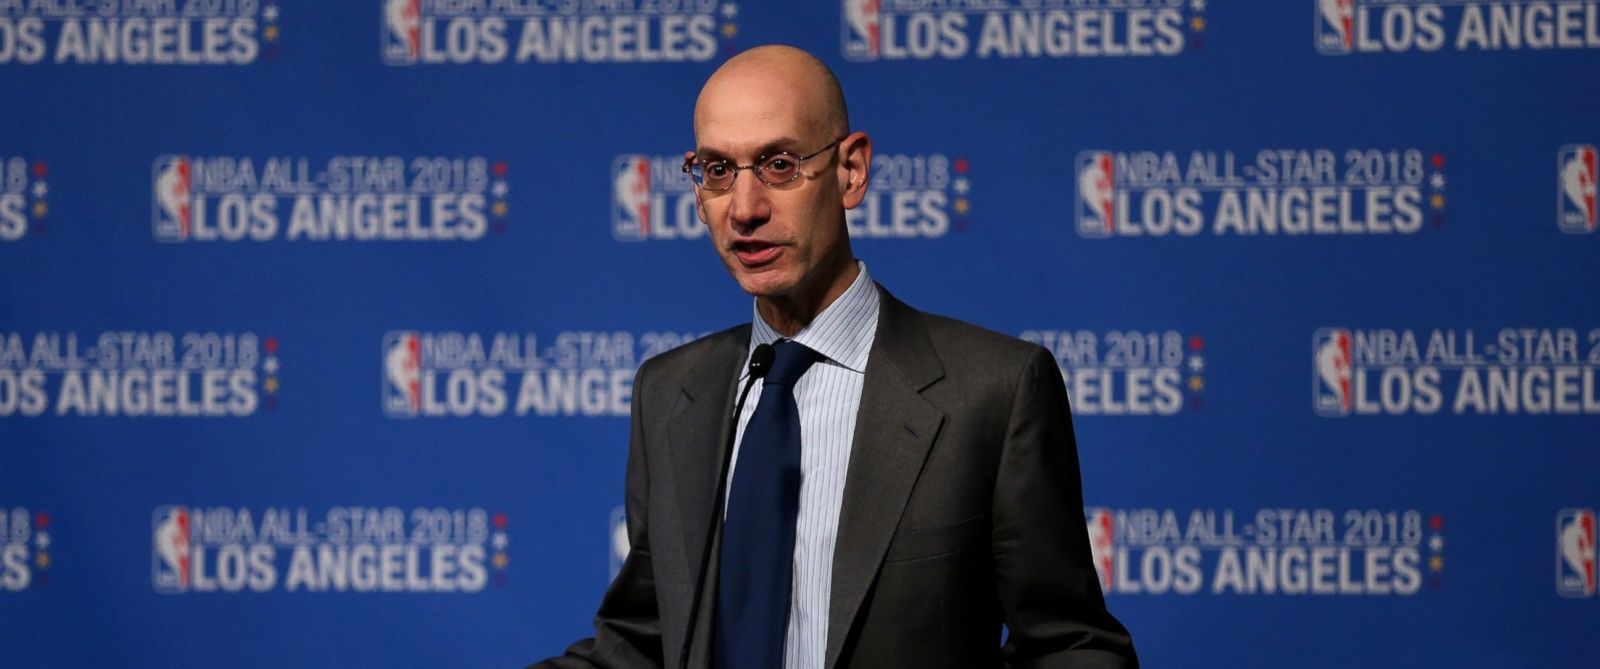 PHOTO: Adam Silver, commissioner of the National Basketball Association, announces that the 2018 NBA All-Star game will be held in Los Angeles at Staples Center during a press conference at Staples Center, March 22, 2016, in Los Angeles.